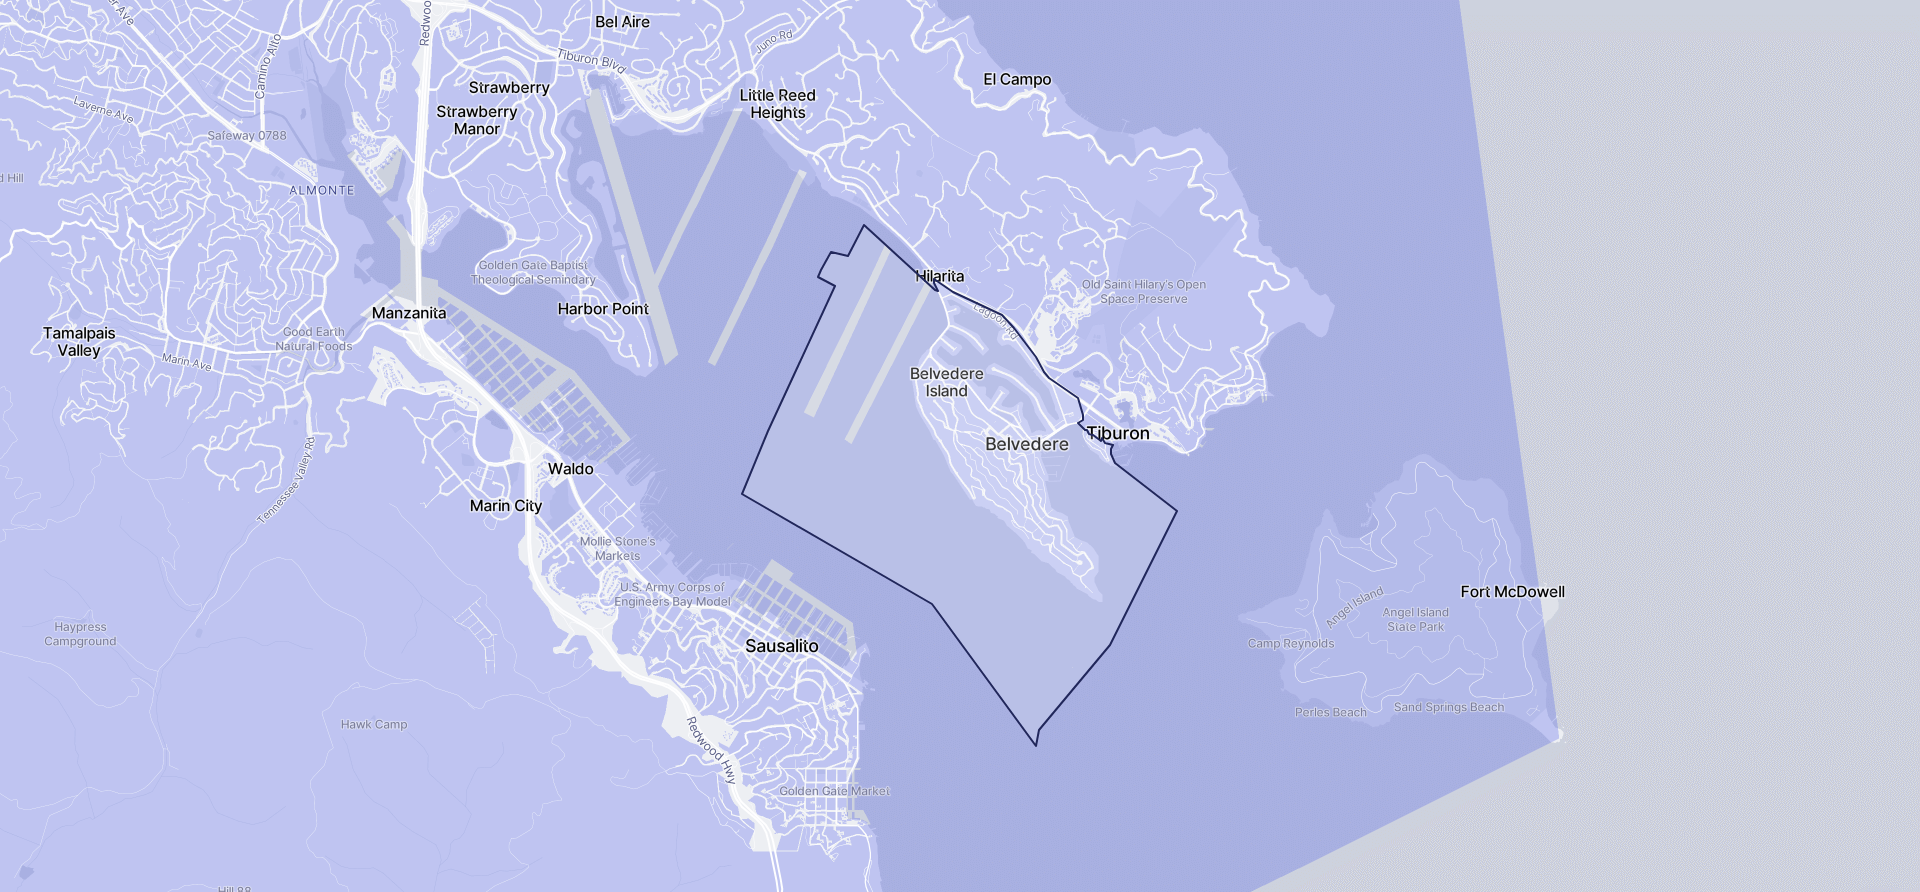 Image of Belvedere boundaries on a map.